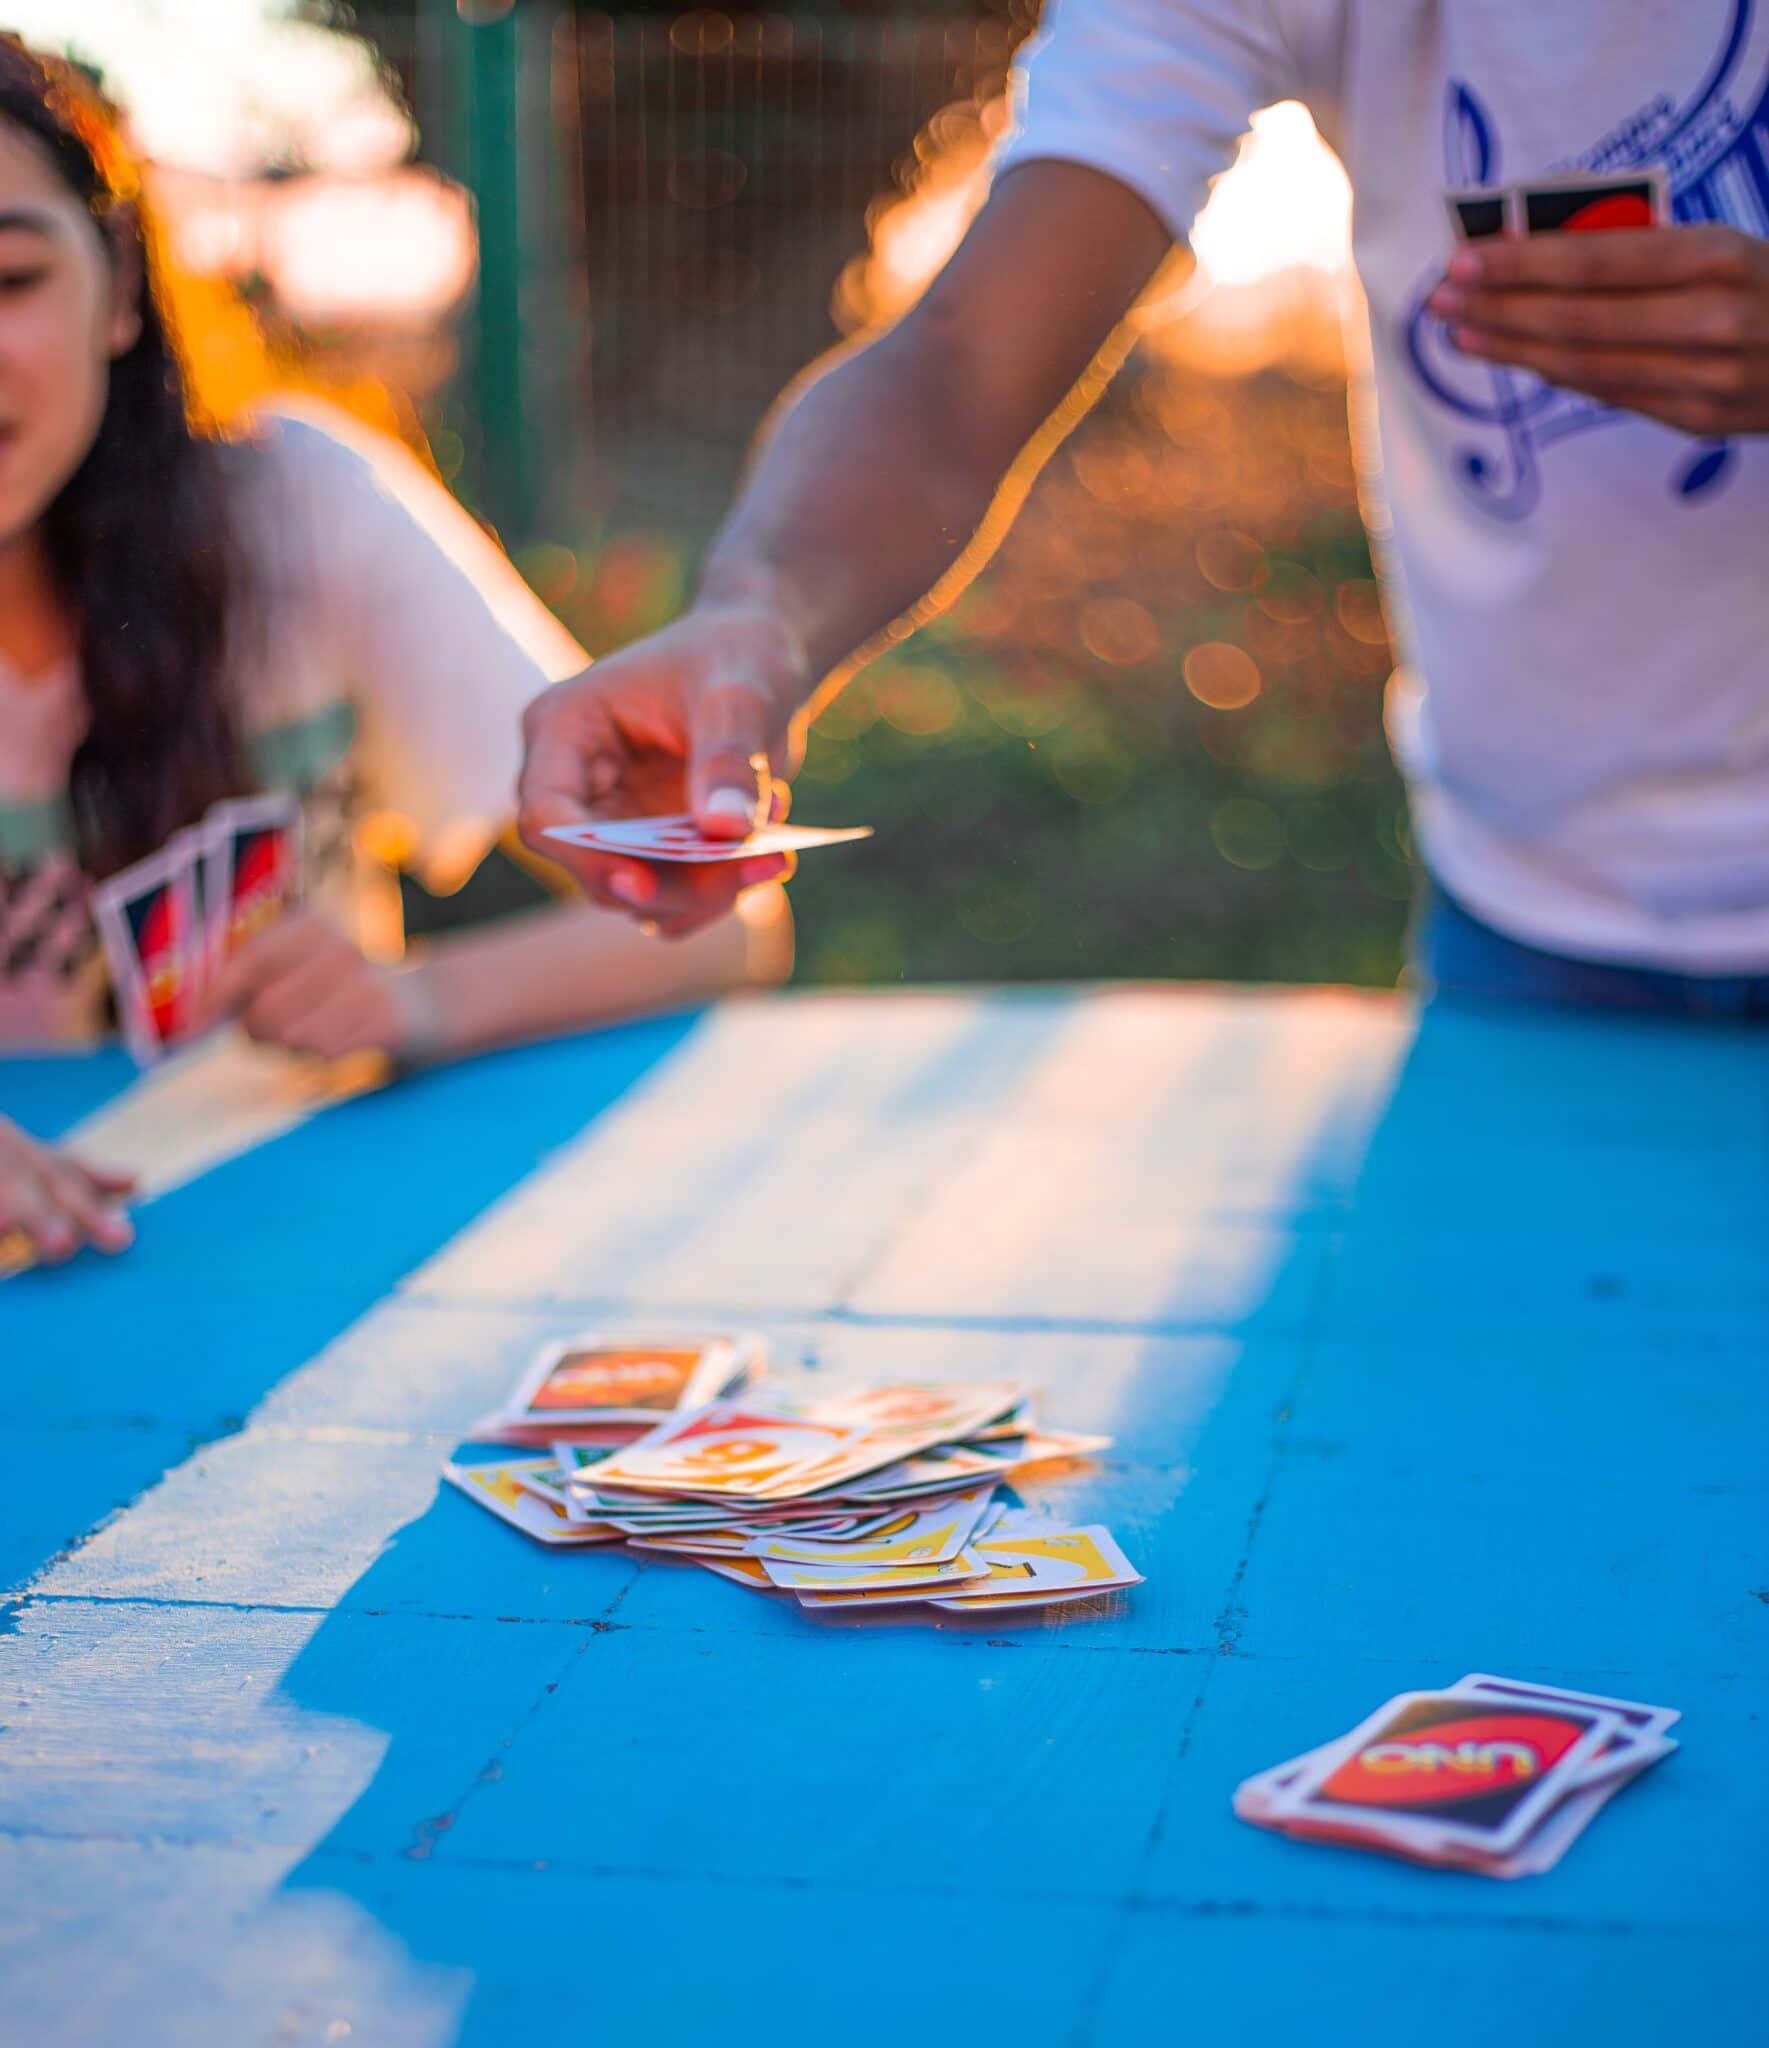 Enjoyable games you can play with the family featured